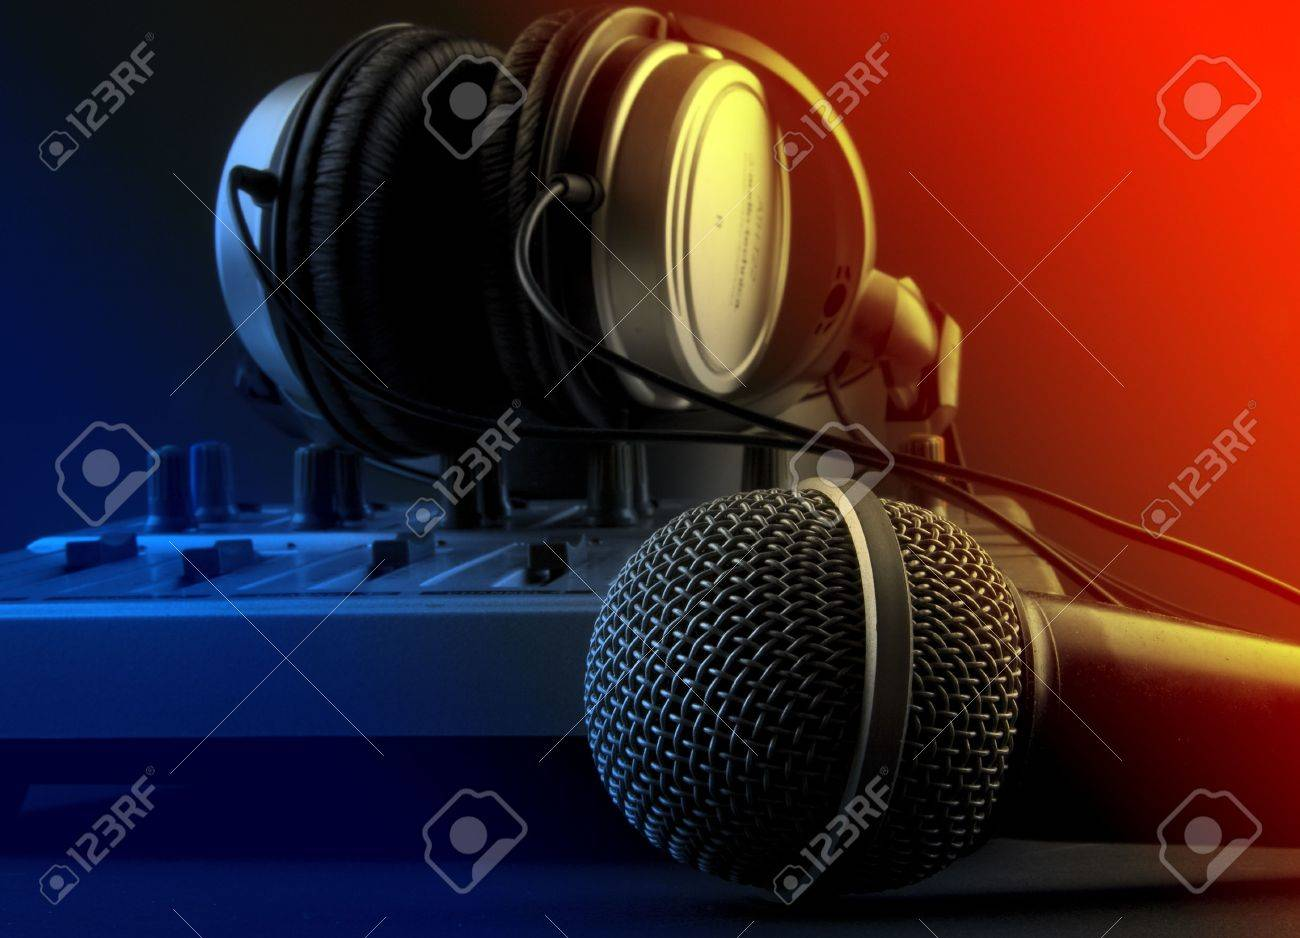 Group Of Microphone And Headphones Wallpaper